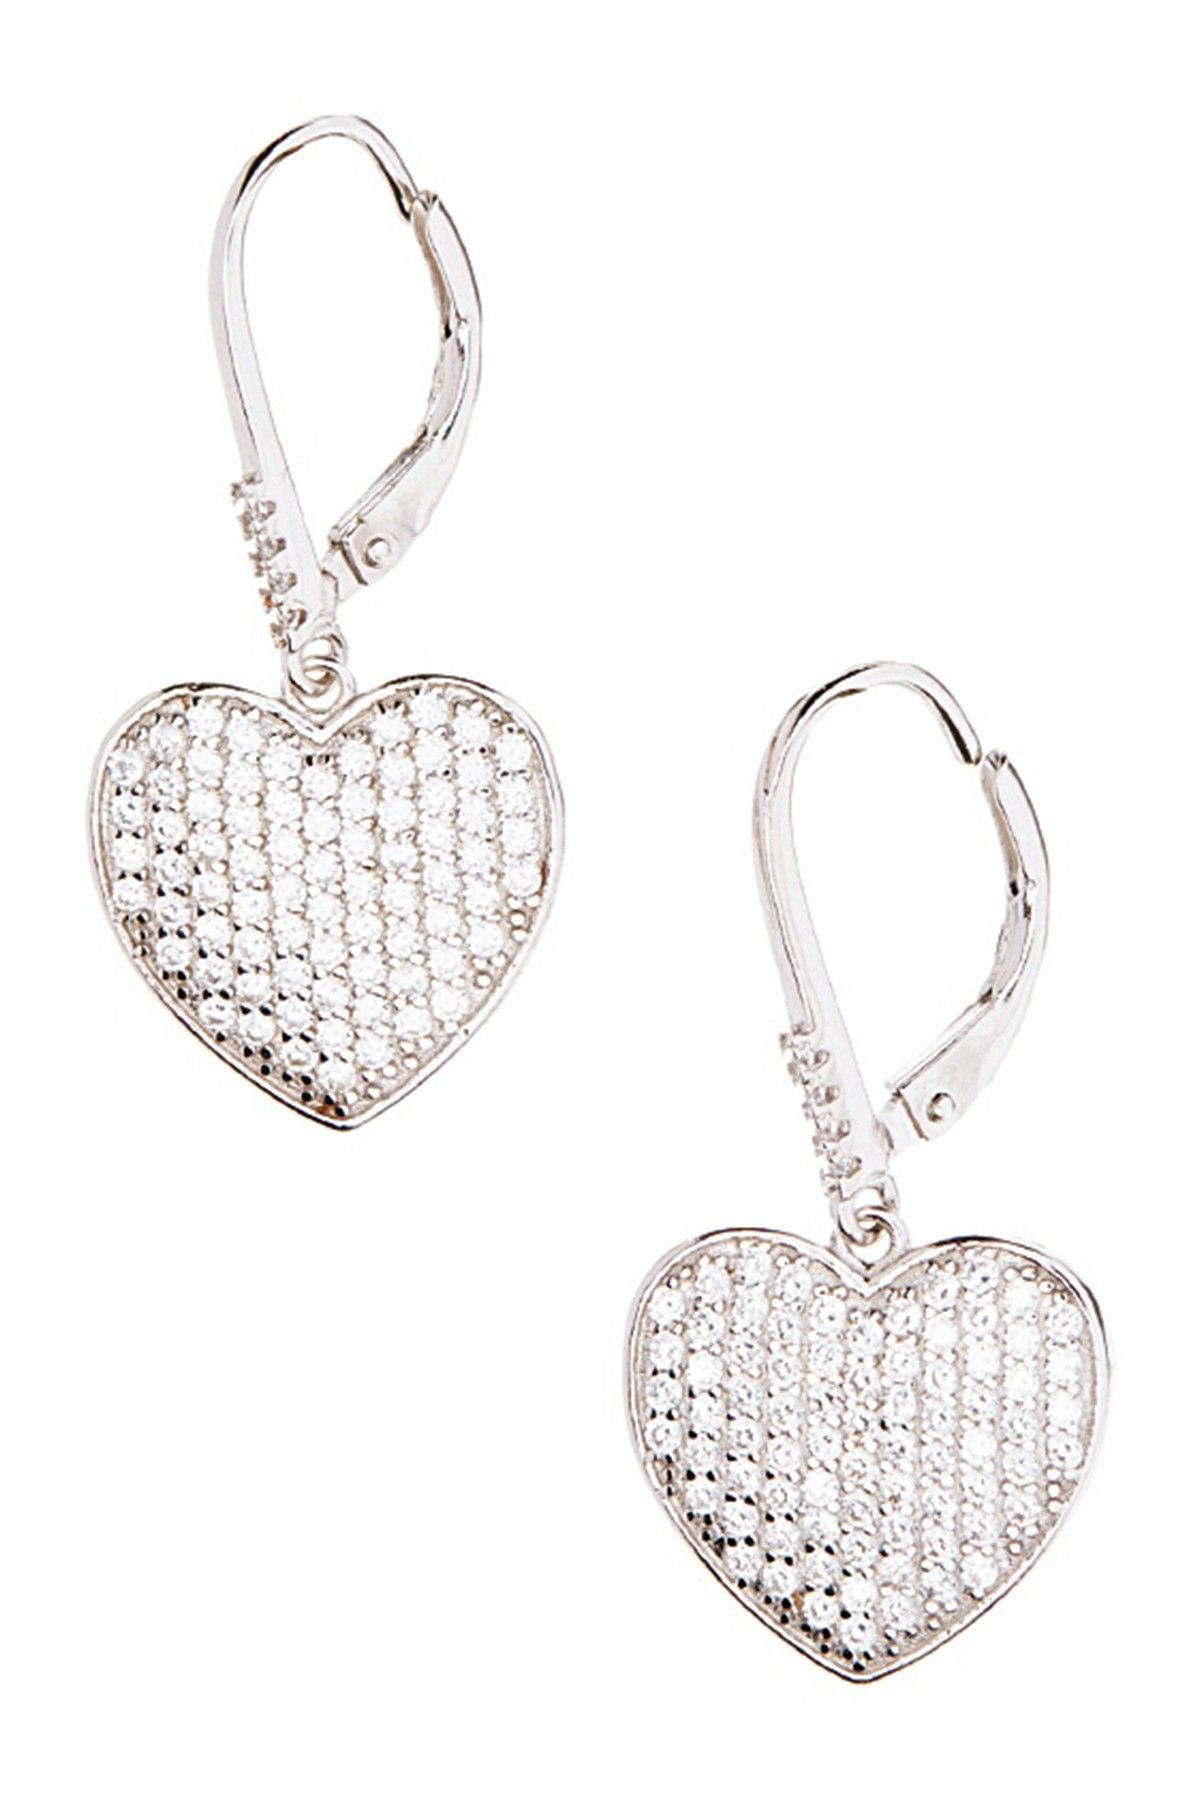 6126459f0a0a1 Best Silver Inc. Rhodium Plated Sterling Silver CZ Pave Heart Drop ...